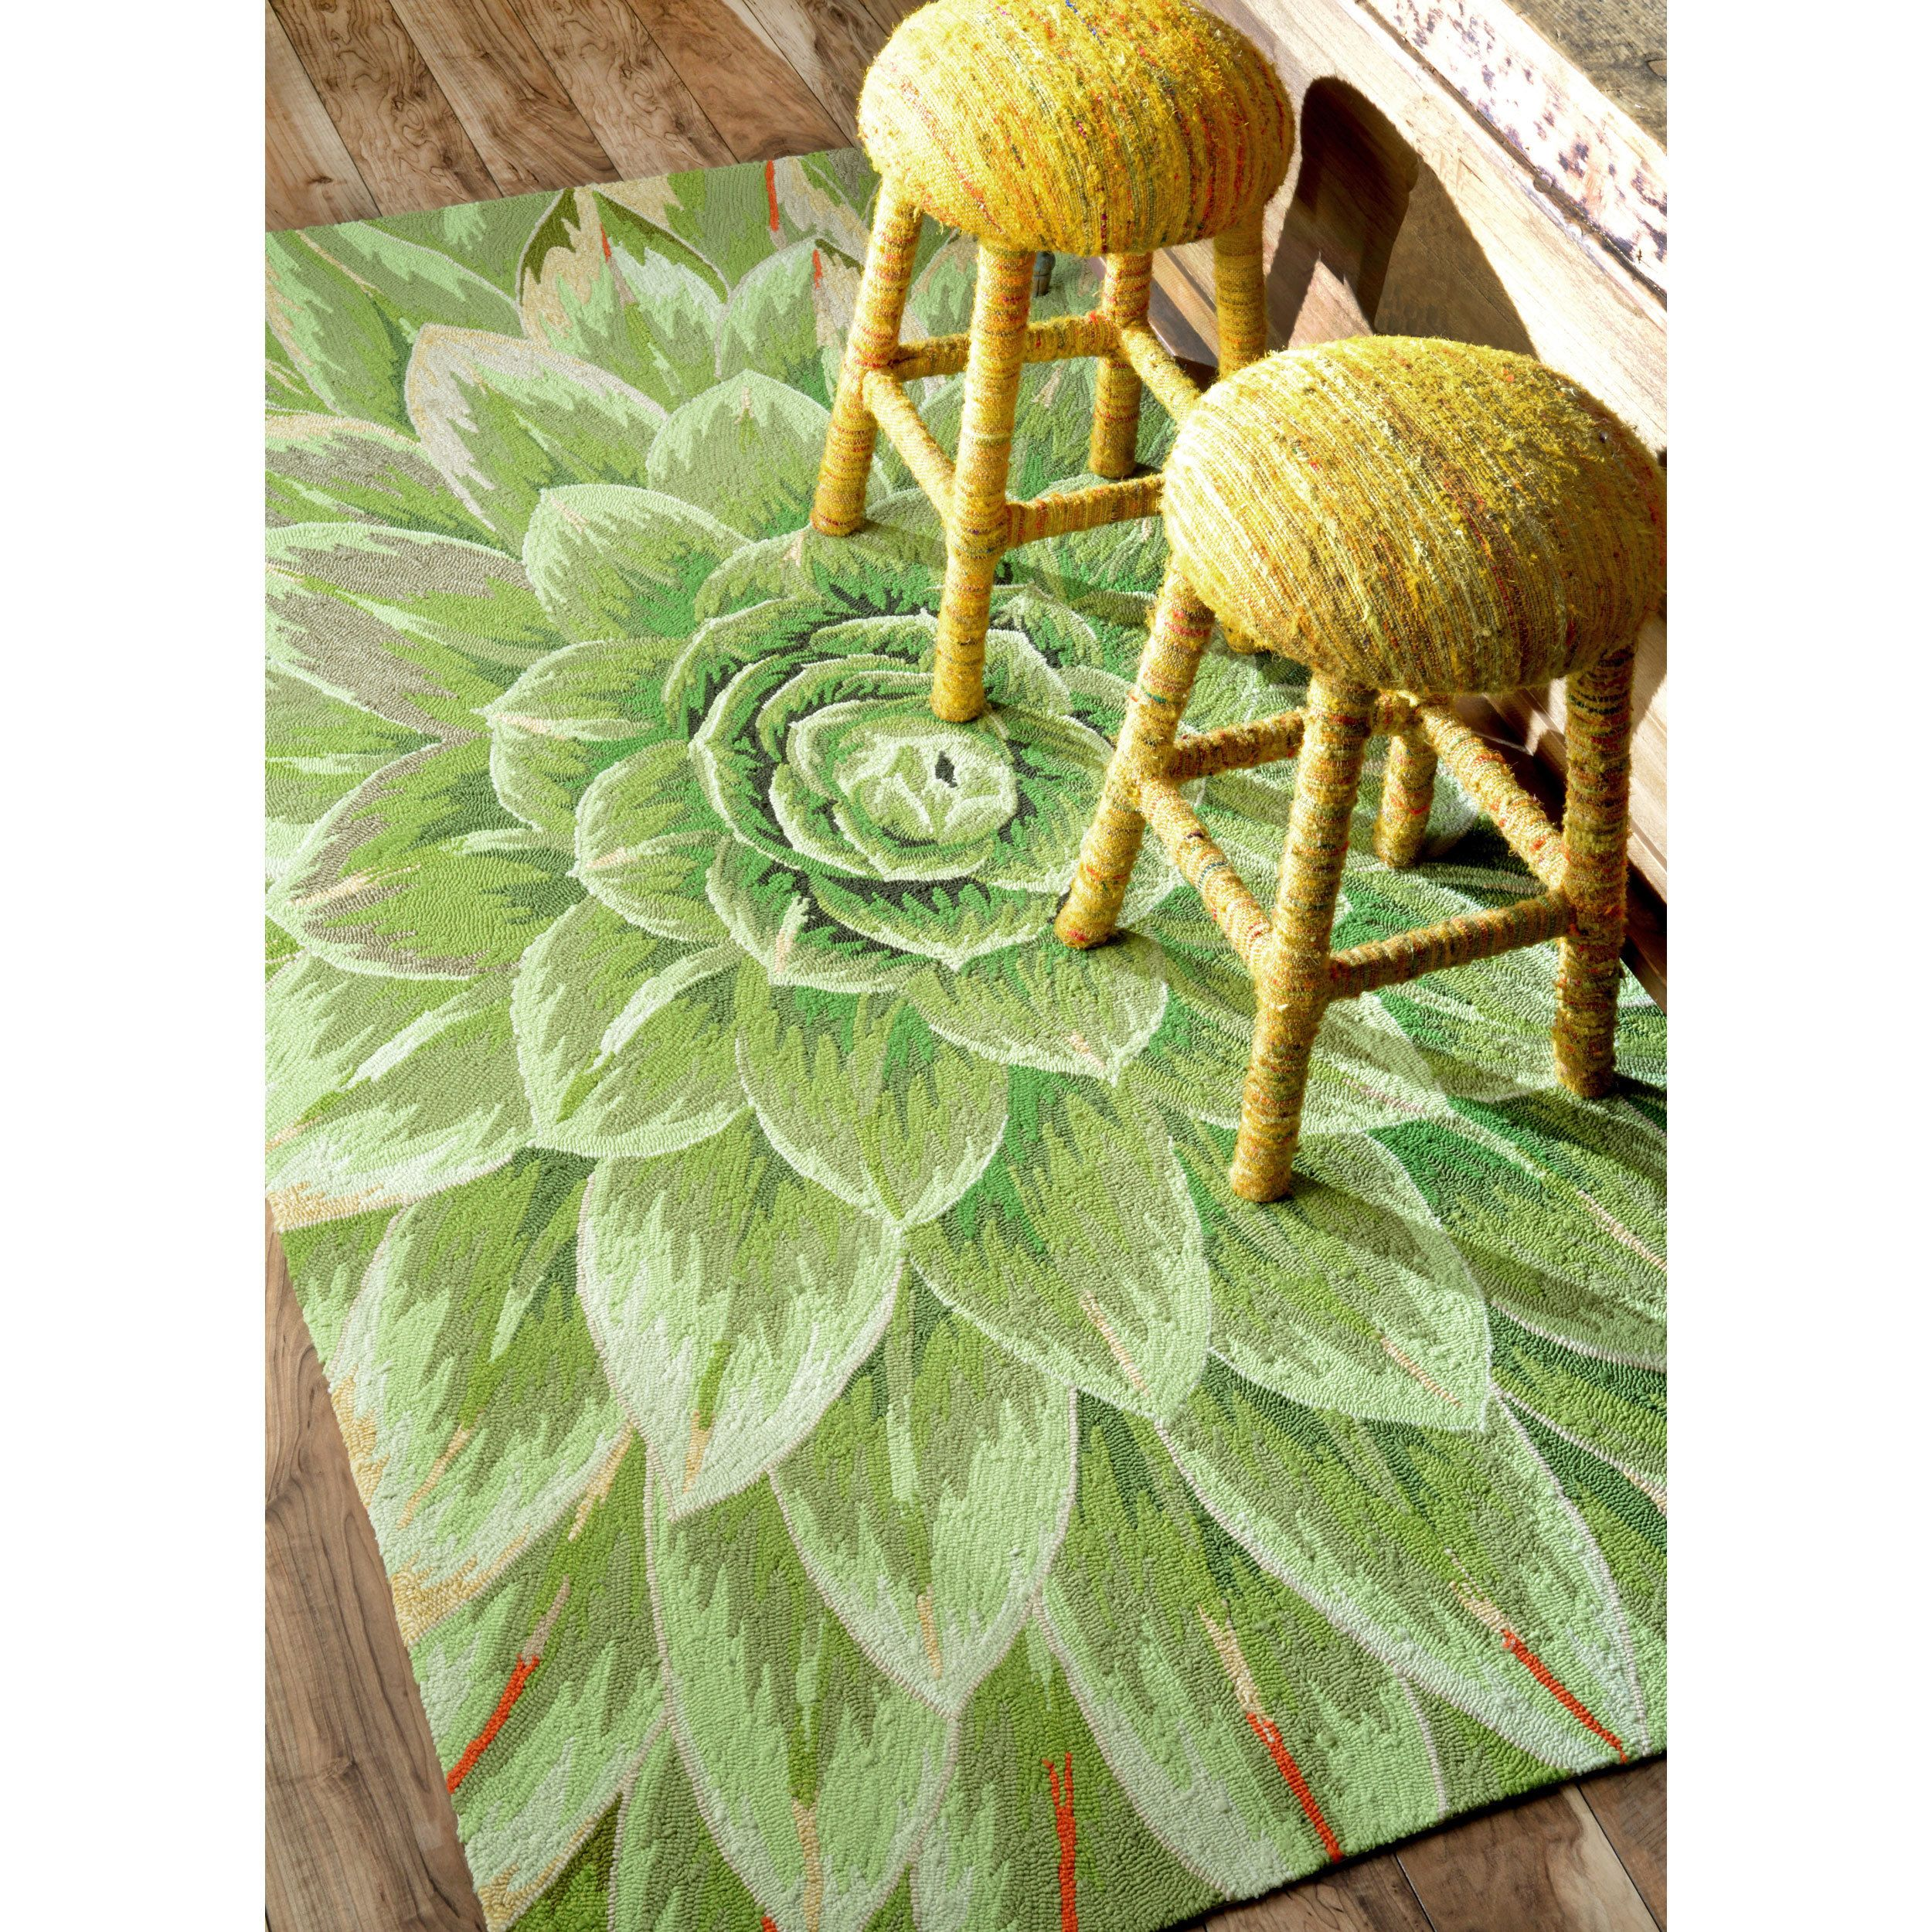 Nuloom Handmade Bold Abstract Floral Green Kitchen Rug 7 6 X 9 6 By Nuloom